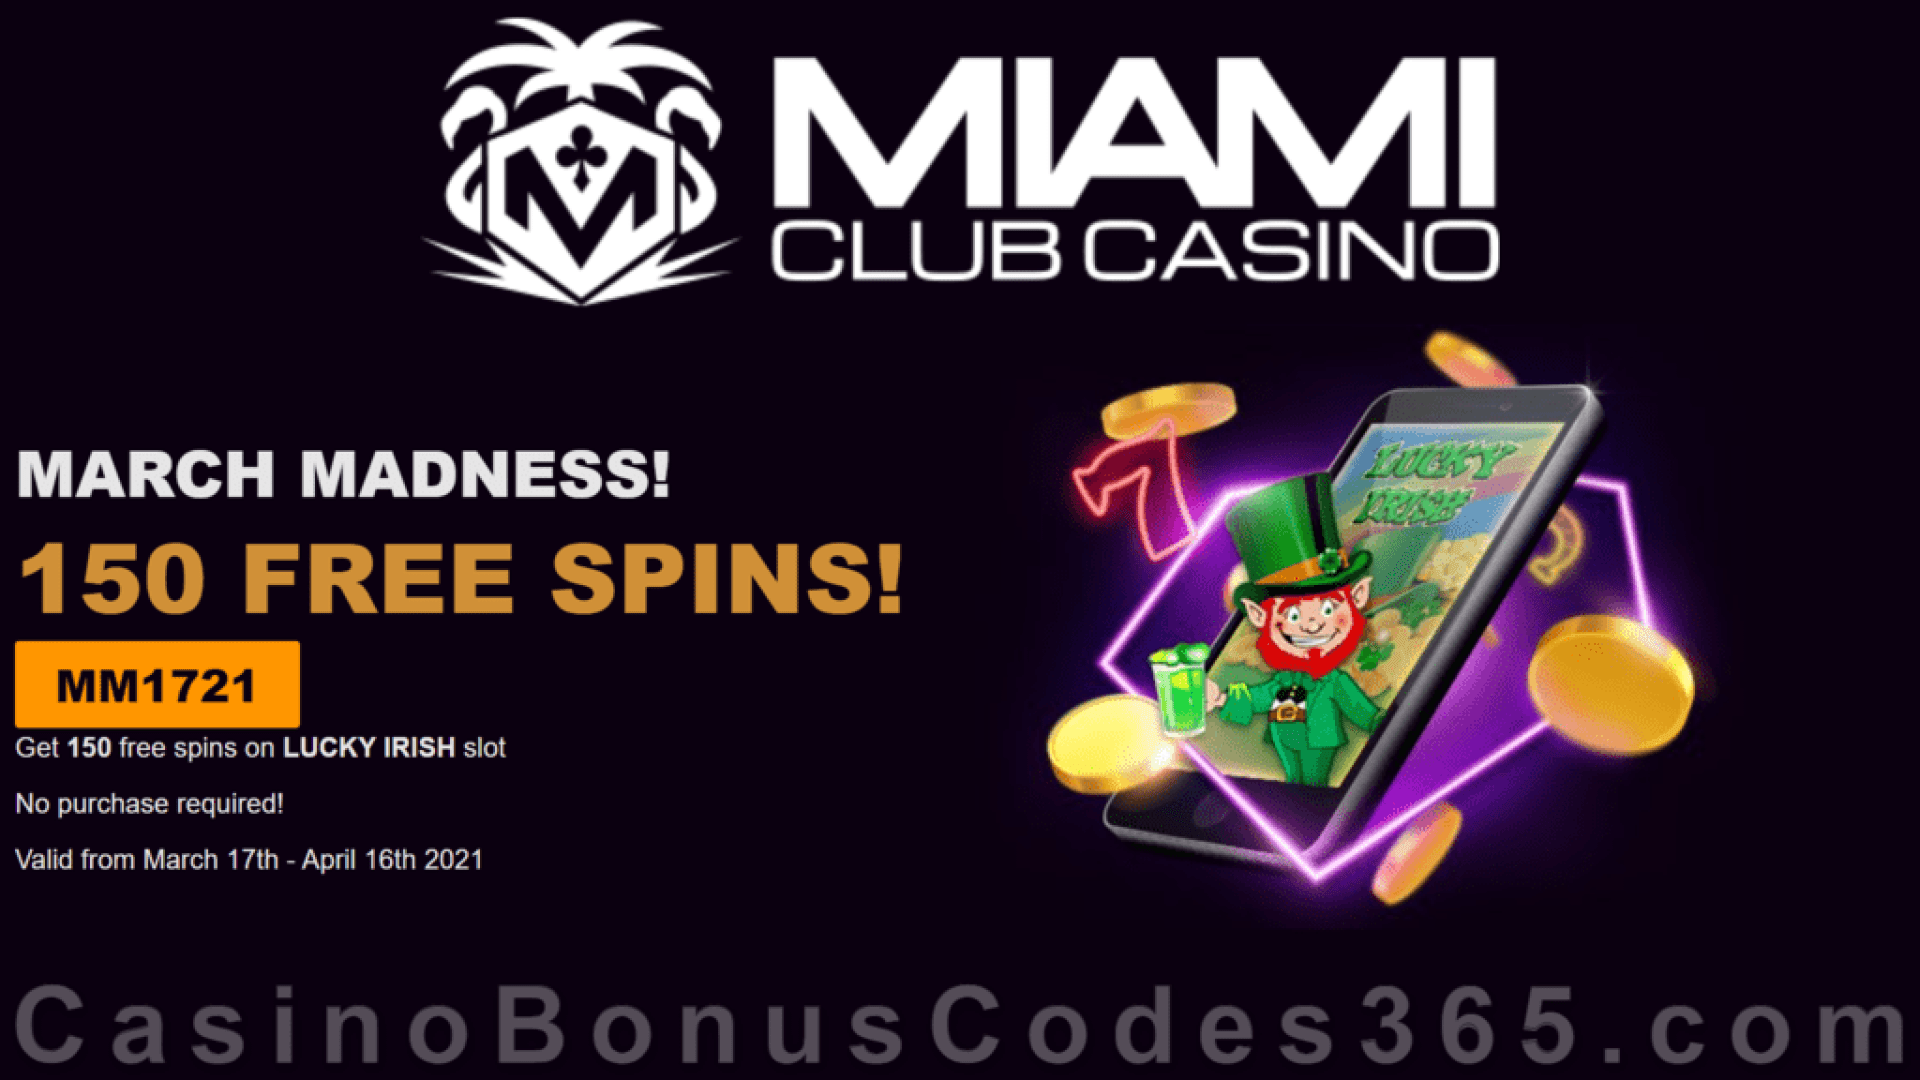 Miami Club Casino 150 FREE WGS Lucky Irish Spins March Madness Week 3 Massive No Deposit Offer